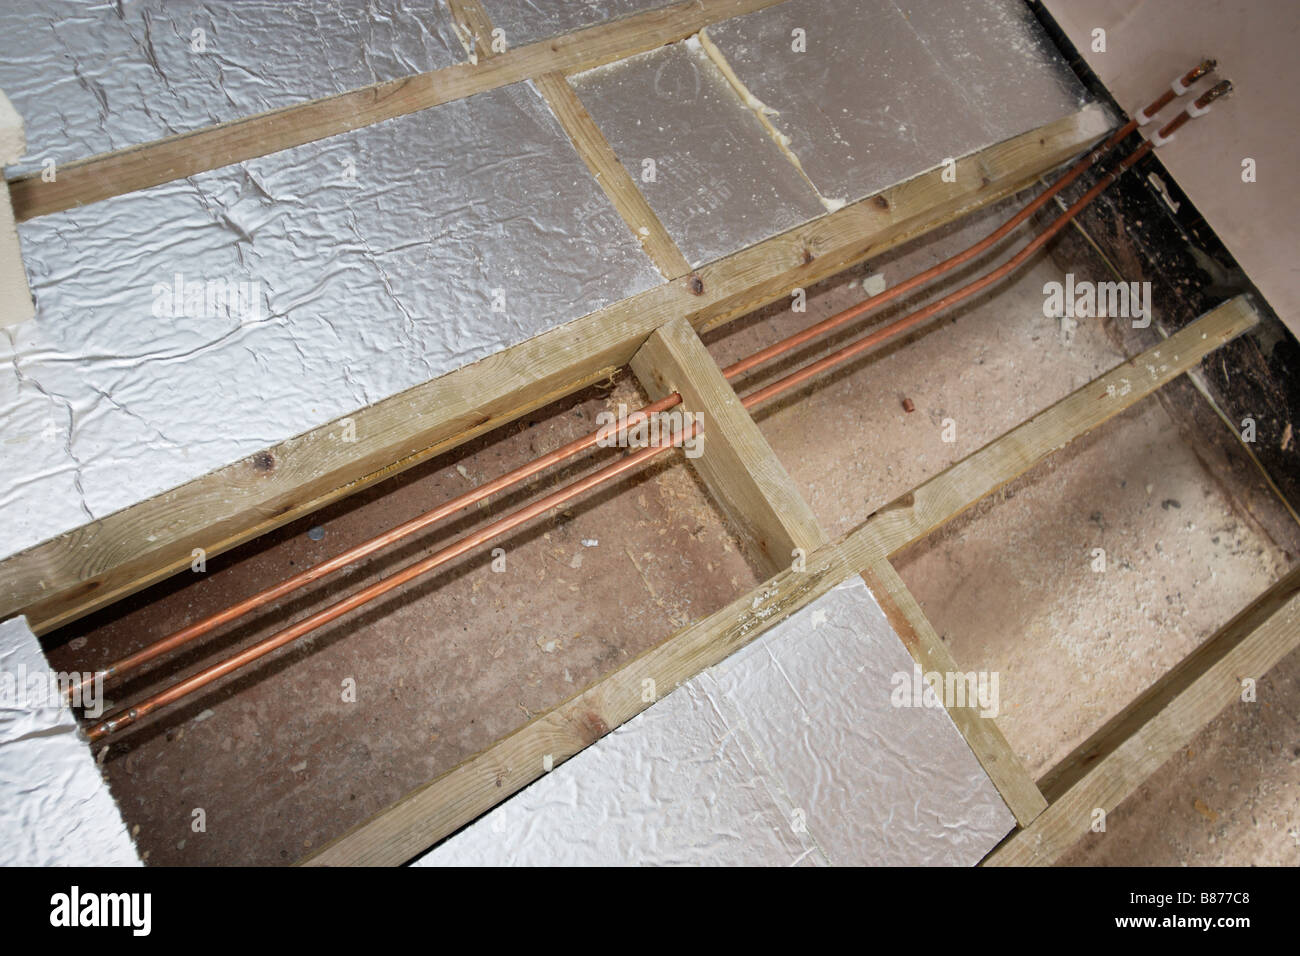 Thermal Insulation Under Floor Of Modern House Stock Photo